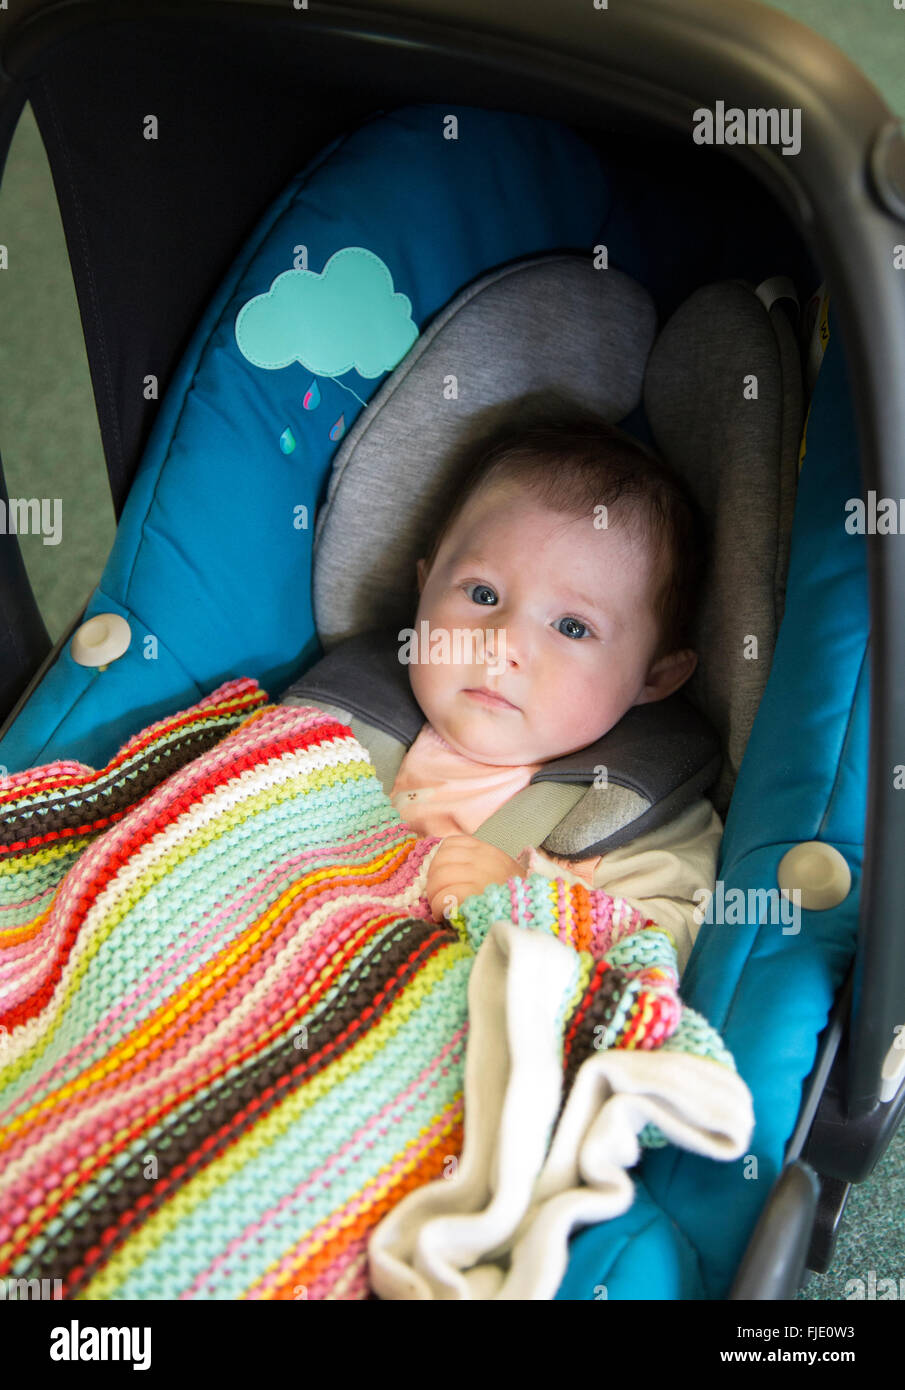 3 month old baby in a car seat Stock Photo: 97423679 - Alamy